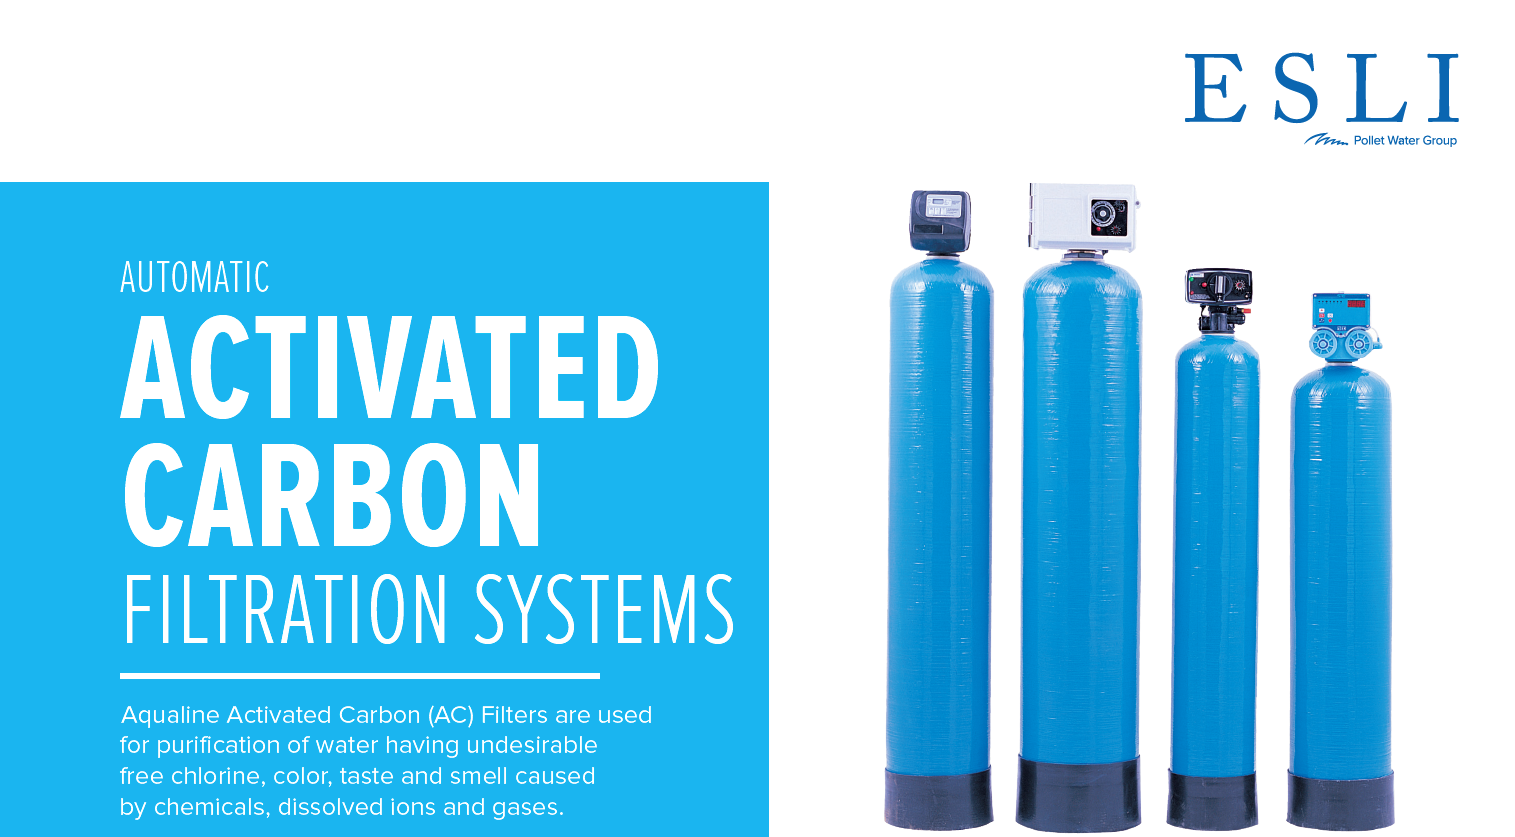 AUTOMATIC ACTIVATED CARBON FILTRATION SYSTEMS_2